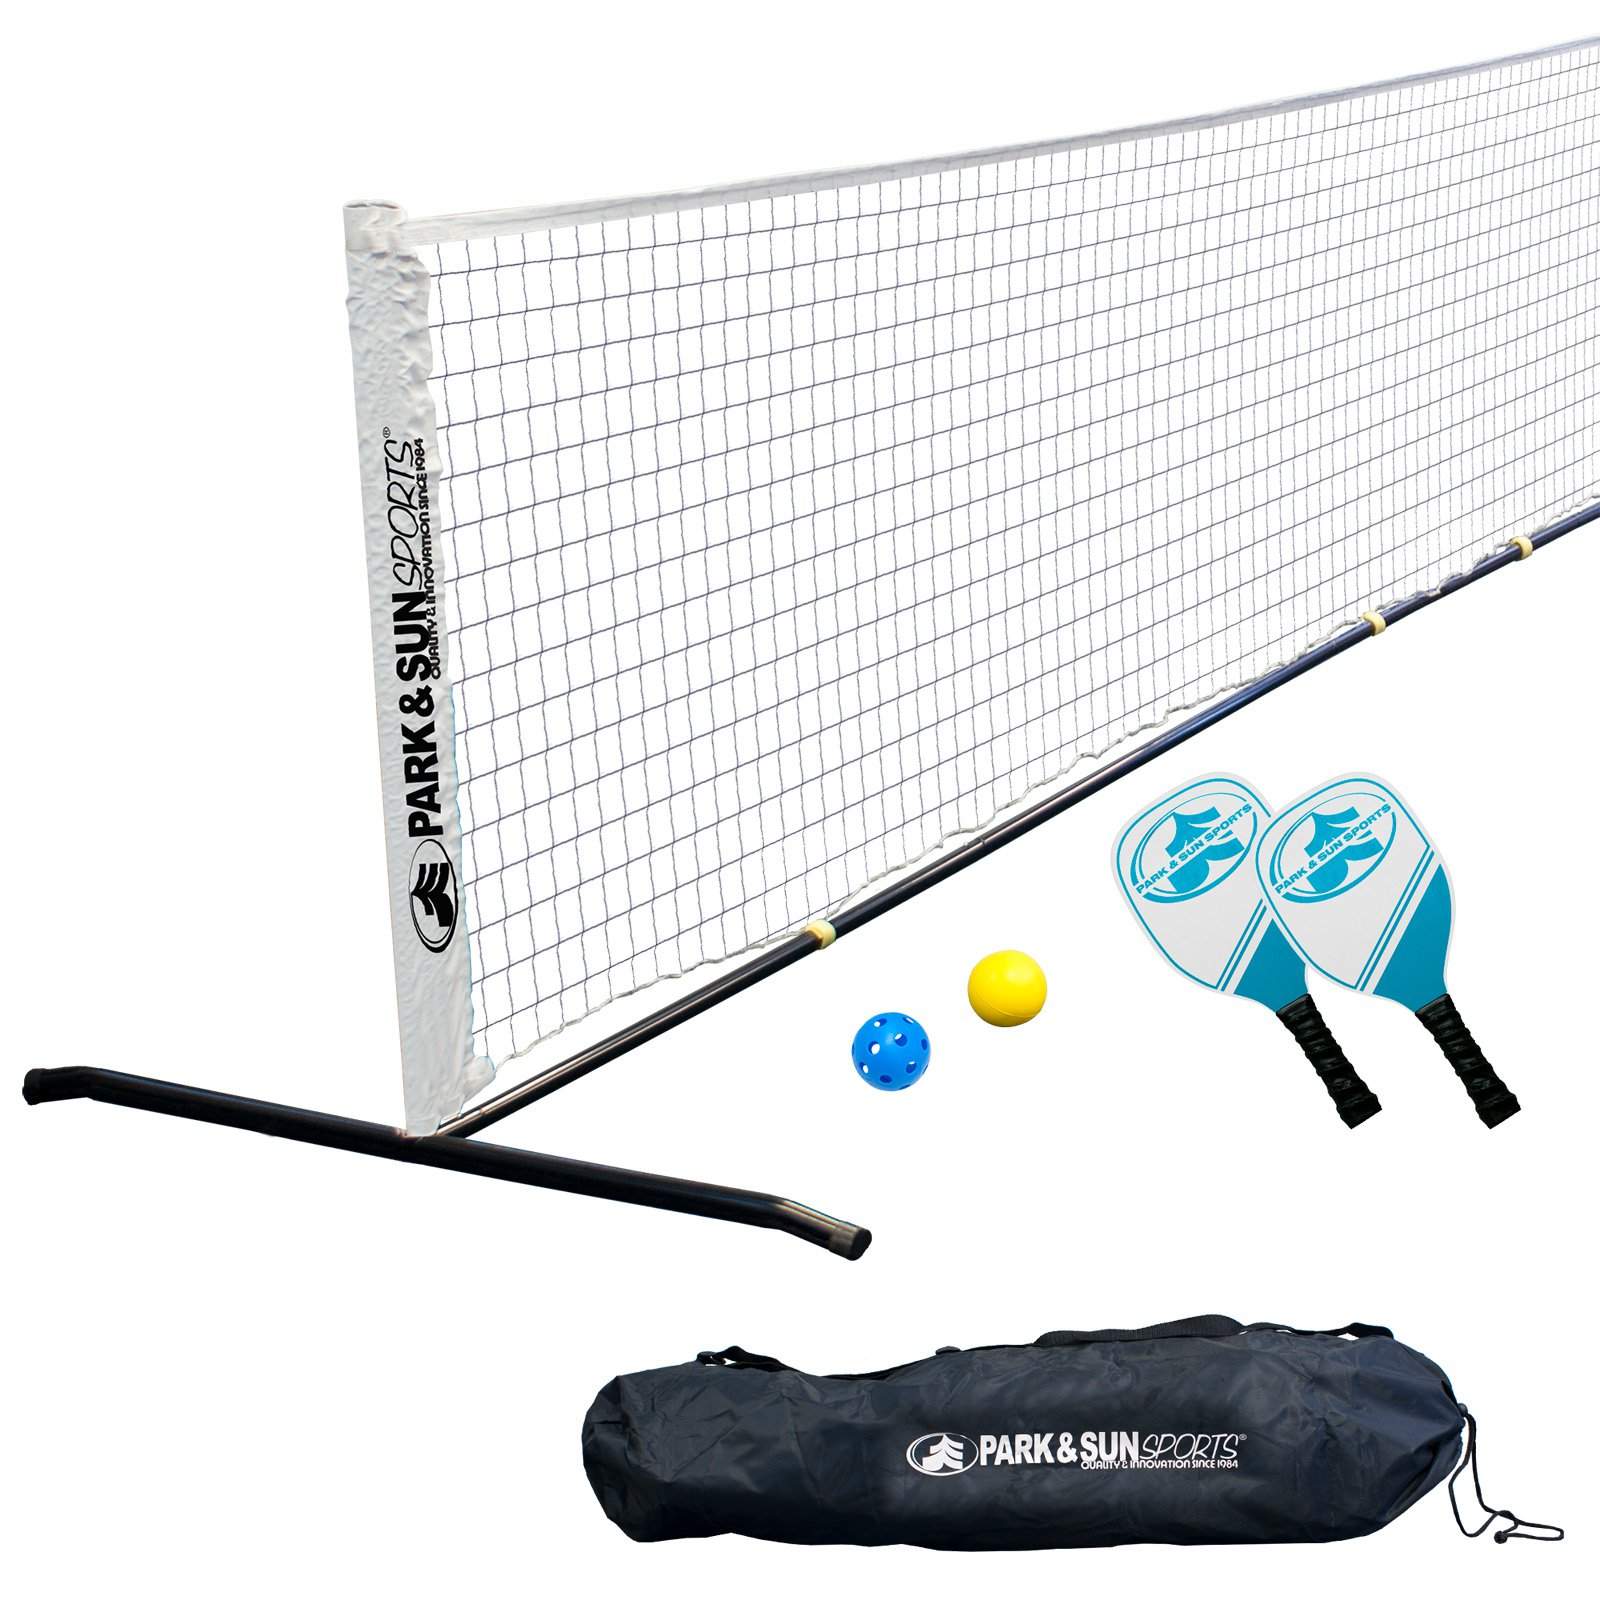 Park & Sun Sports Portable Pickleball and Tennis Set by